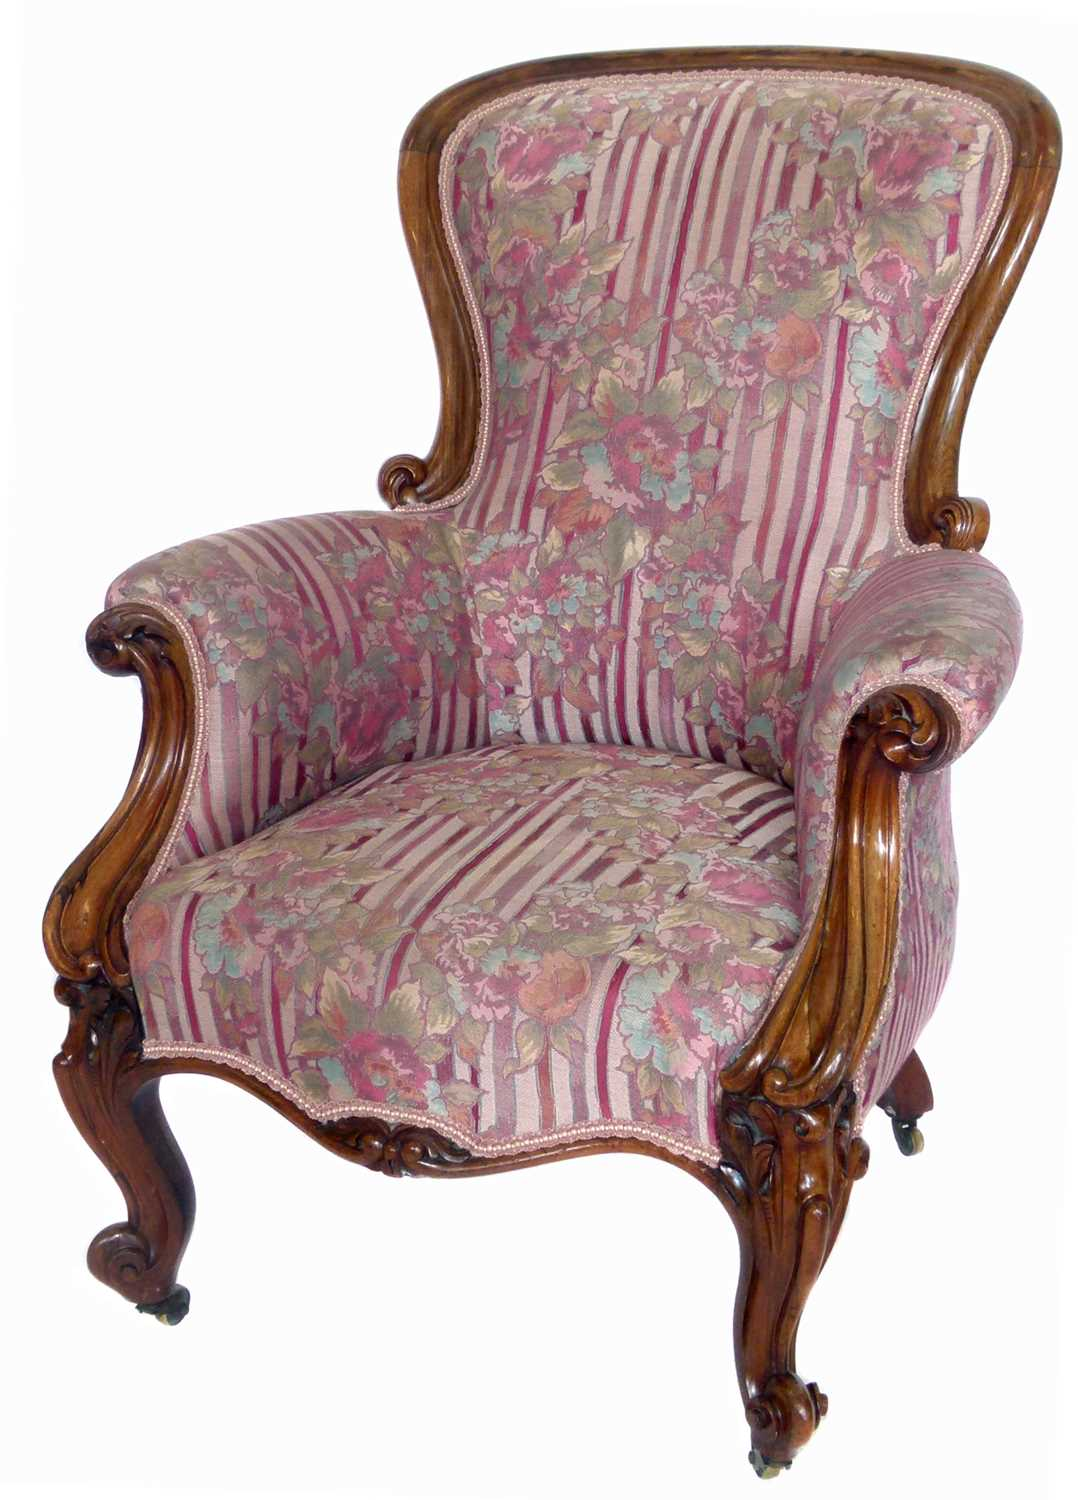 Lot 382 - Victorian rosewood framed upholstered chair